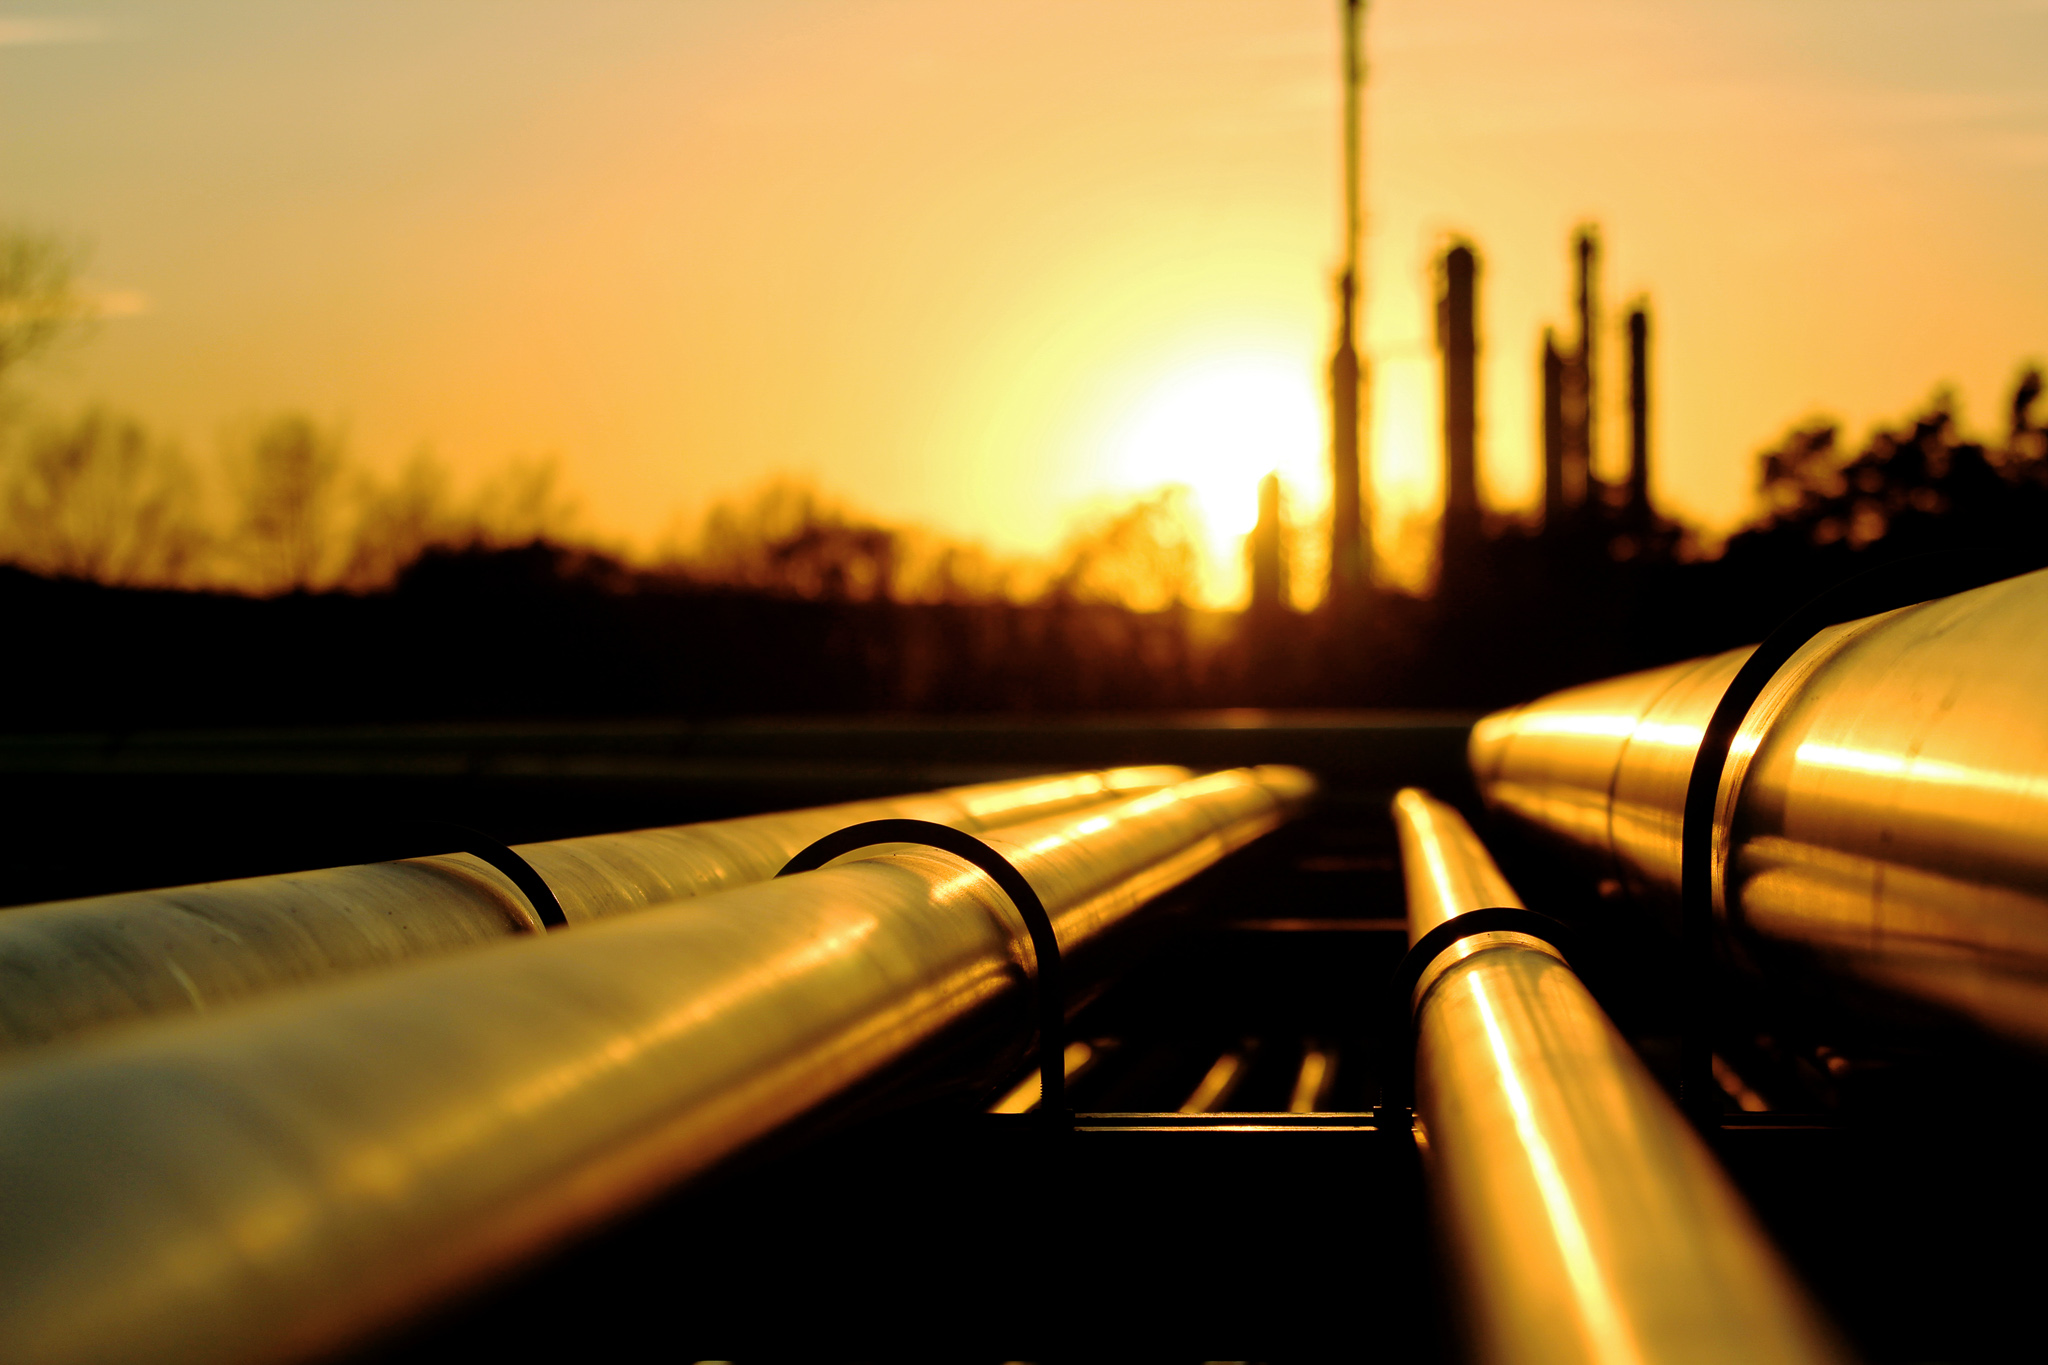 Is Your Pipeline Safety and Loss Management System Up to Code?